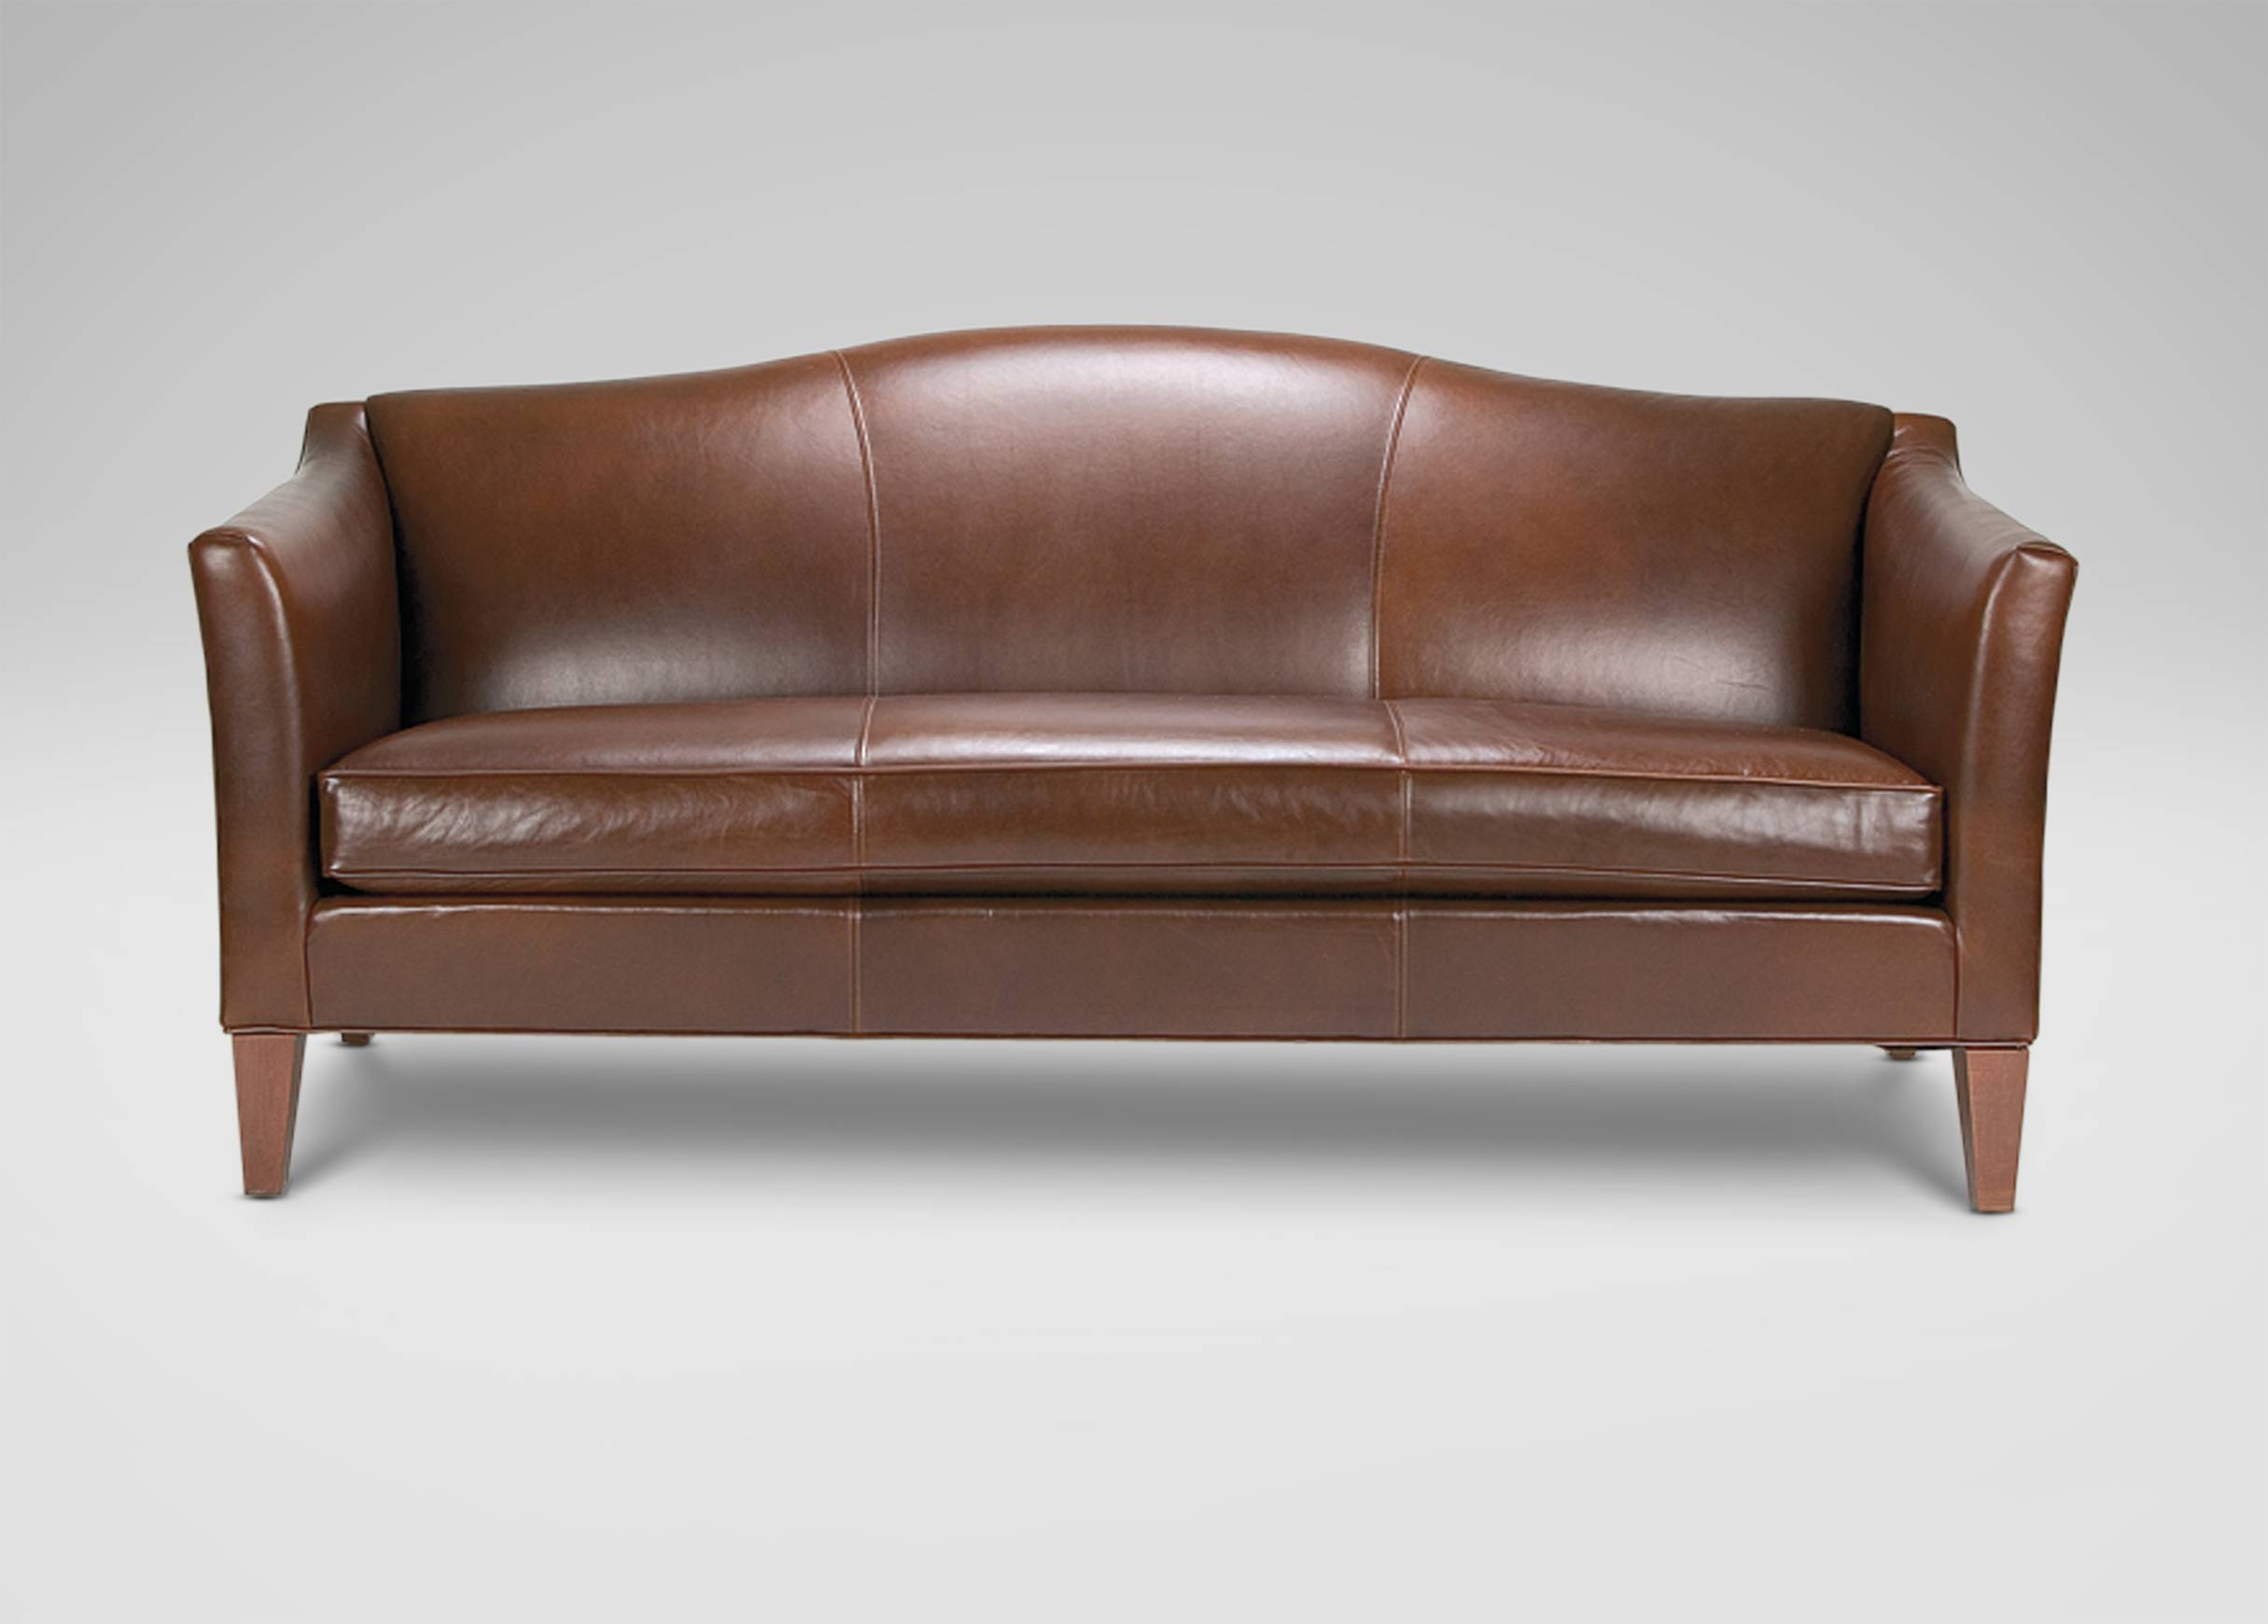 Hartwell Bench-Cushion Leather Sofa - Ethan Allen | Sitegenesis pertaining to Leather Bench Sofas (Image 12 of 30)